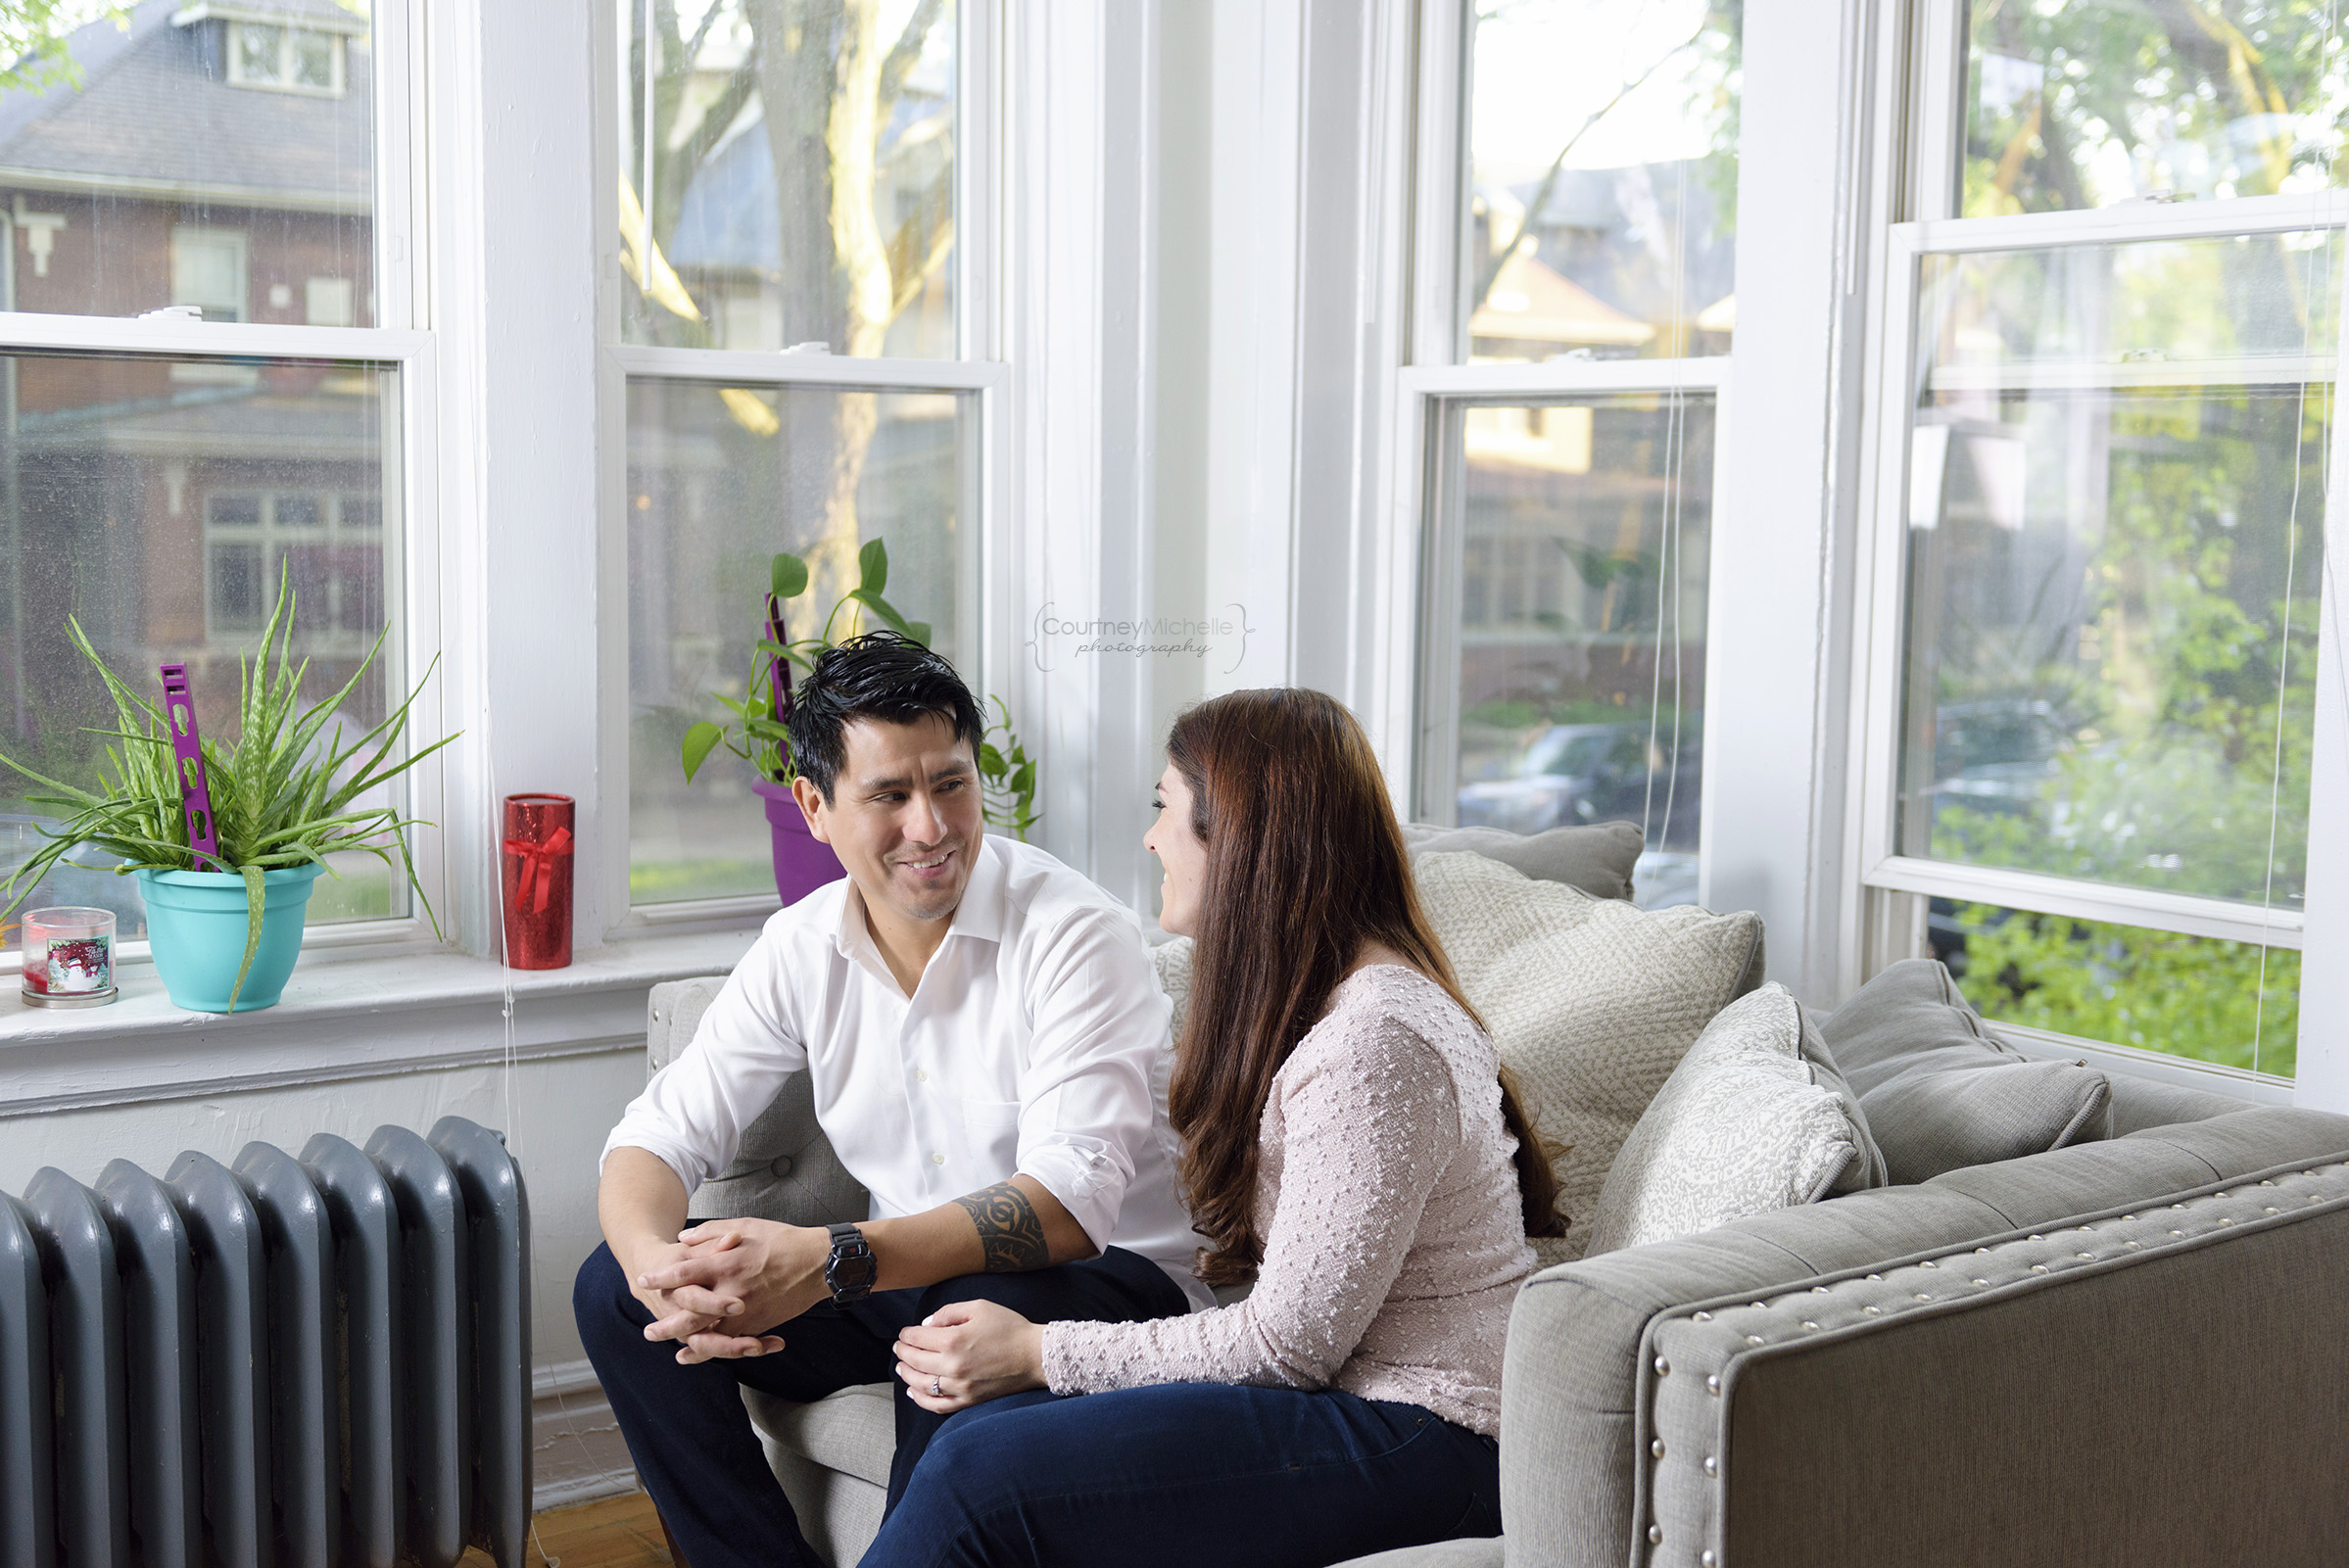 couple-in-living-room-north-center-chicago-engagement-photography-by-courtney-laper©COPYRIGHTCMP-edit-1131.jpg